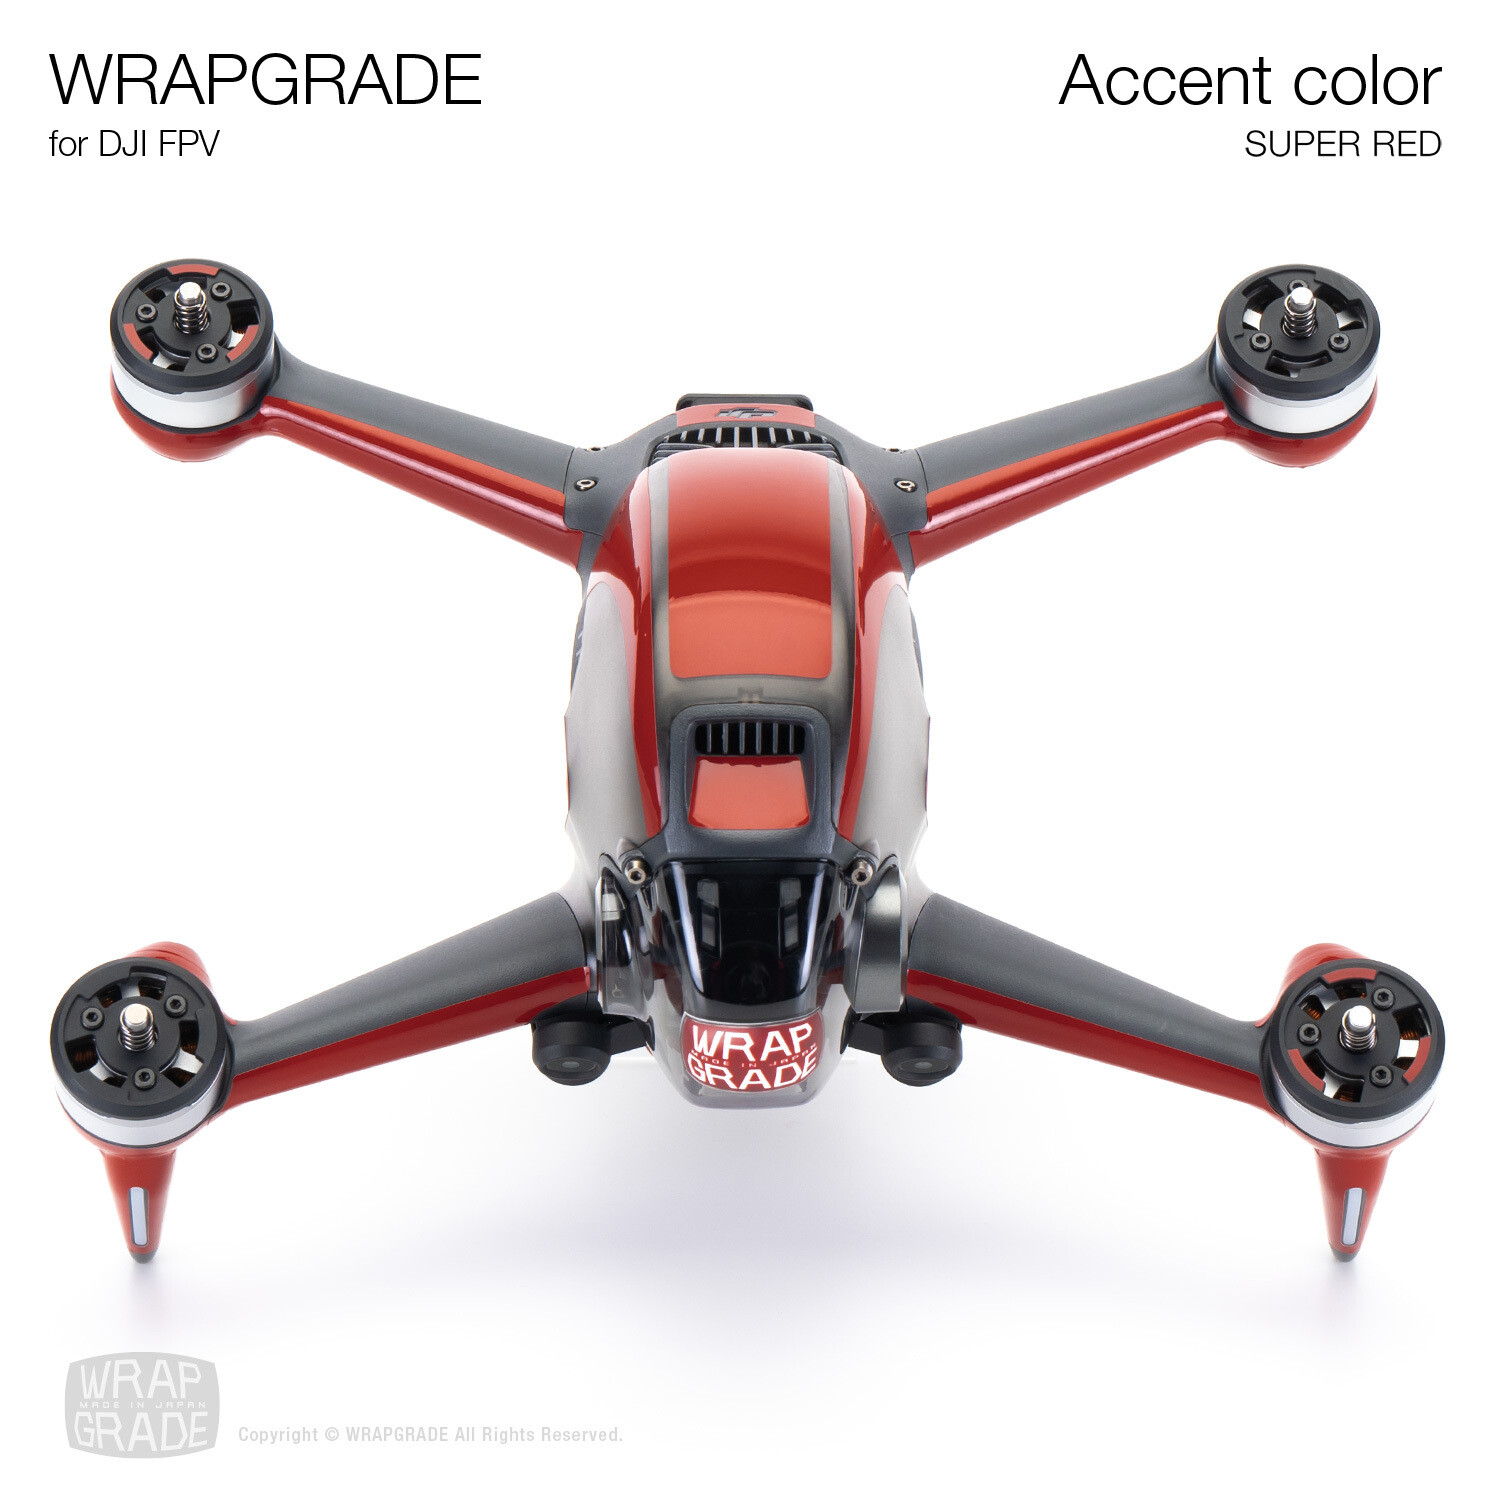 WRAPGRADE for DJI FPV | Accent color (SUPER RED)